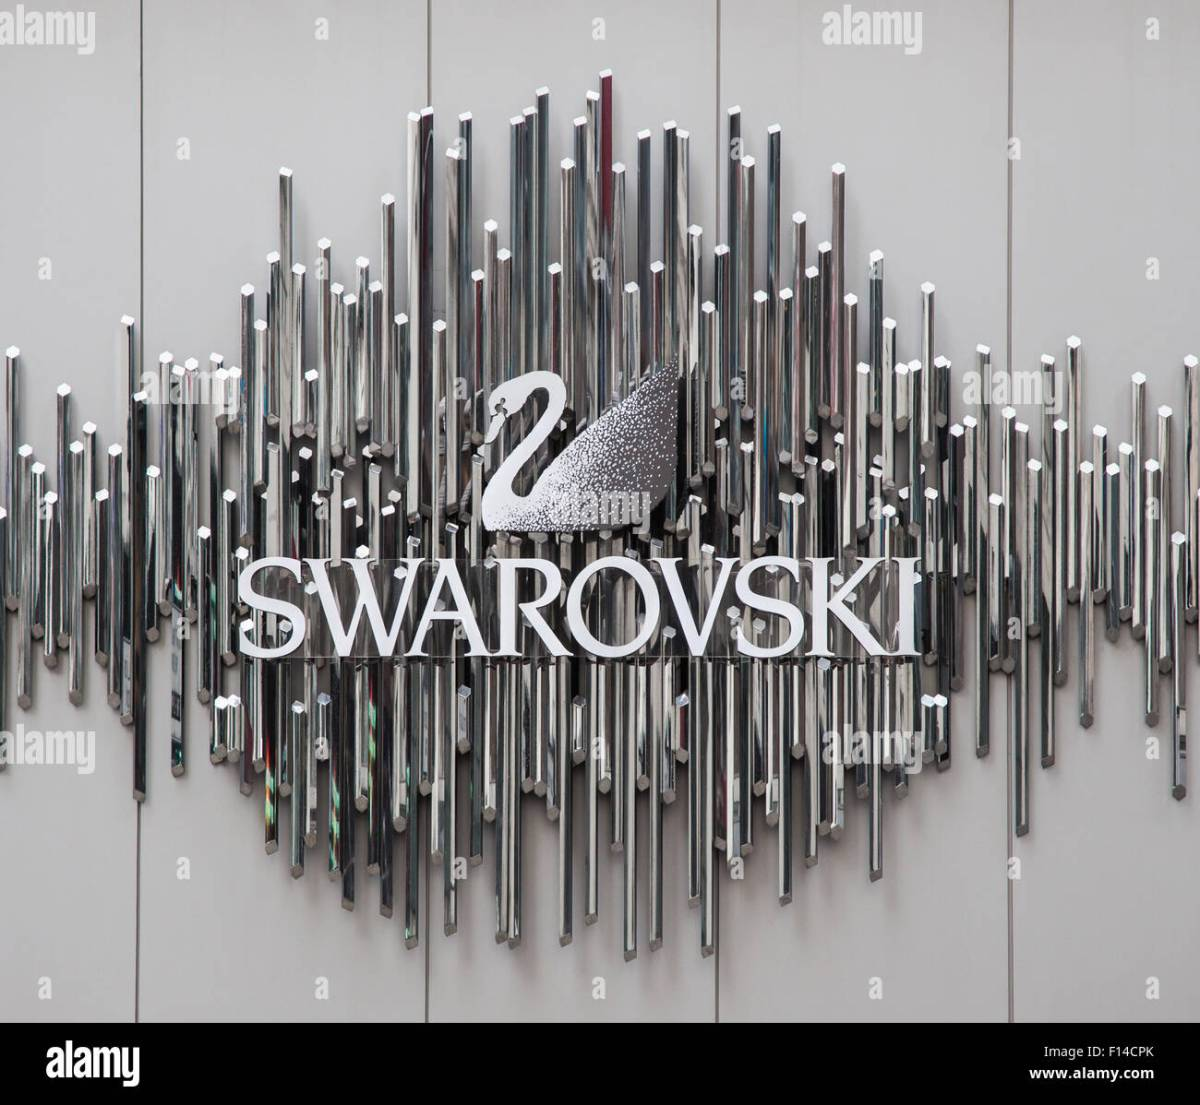 Swarovski brand on storefront in New York City Stock Photo - Alamy